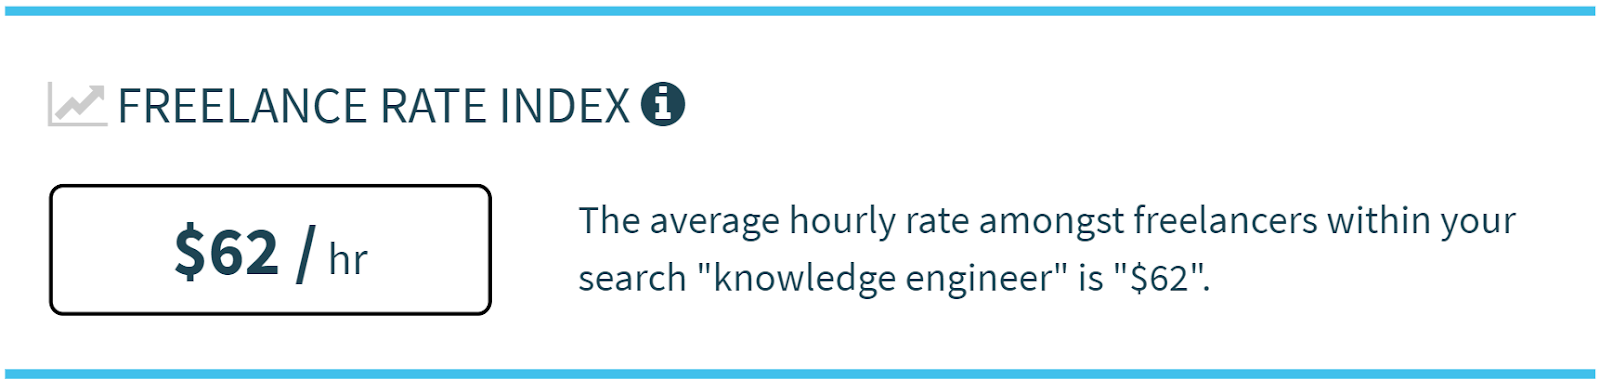 Average hourly rate freelancer knowledge engineer